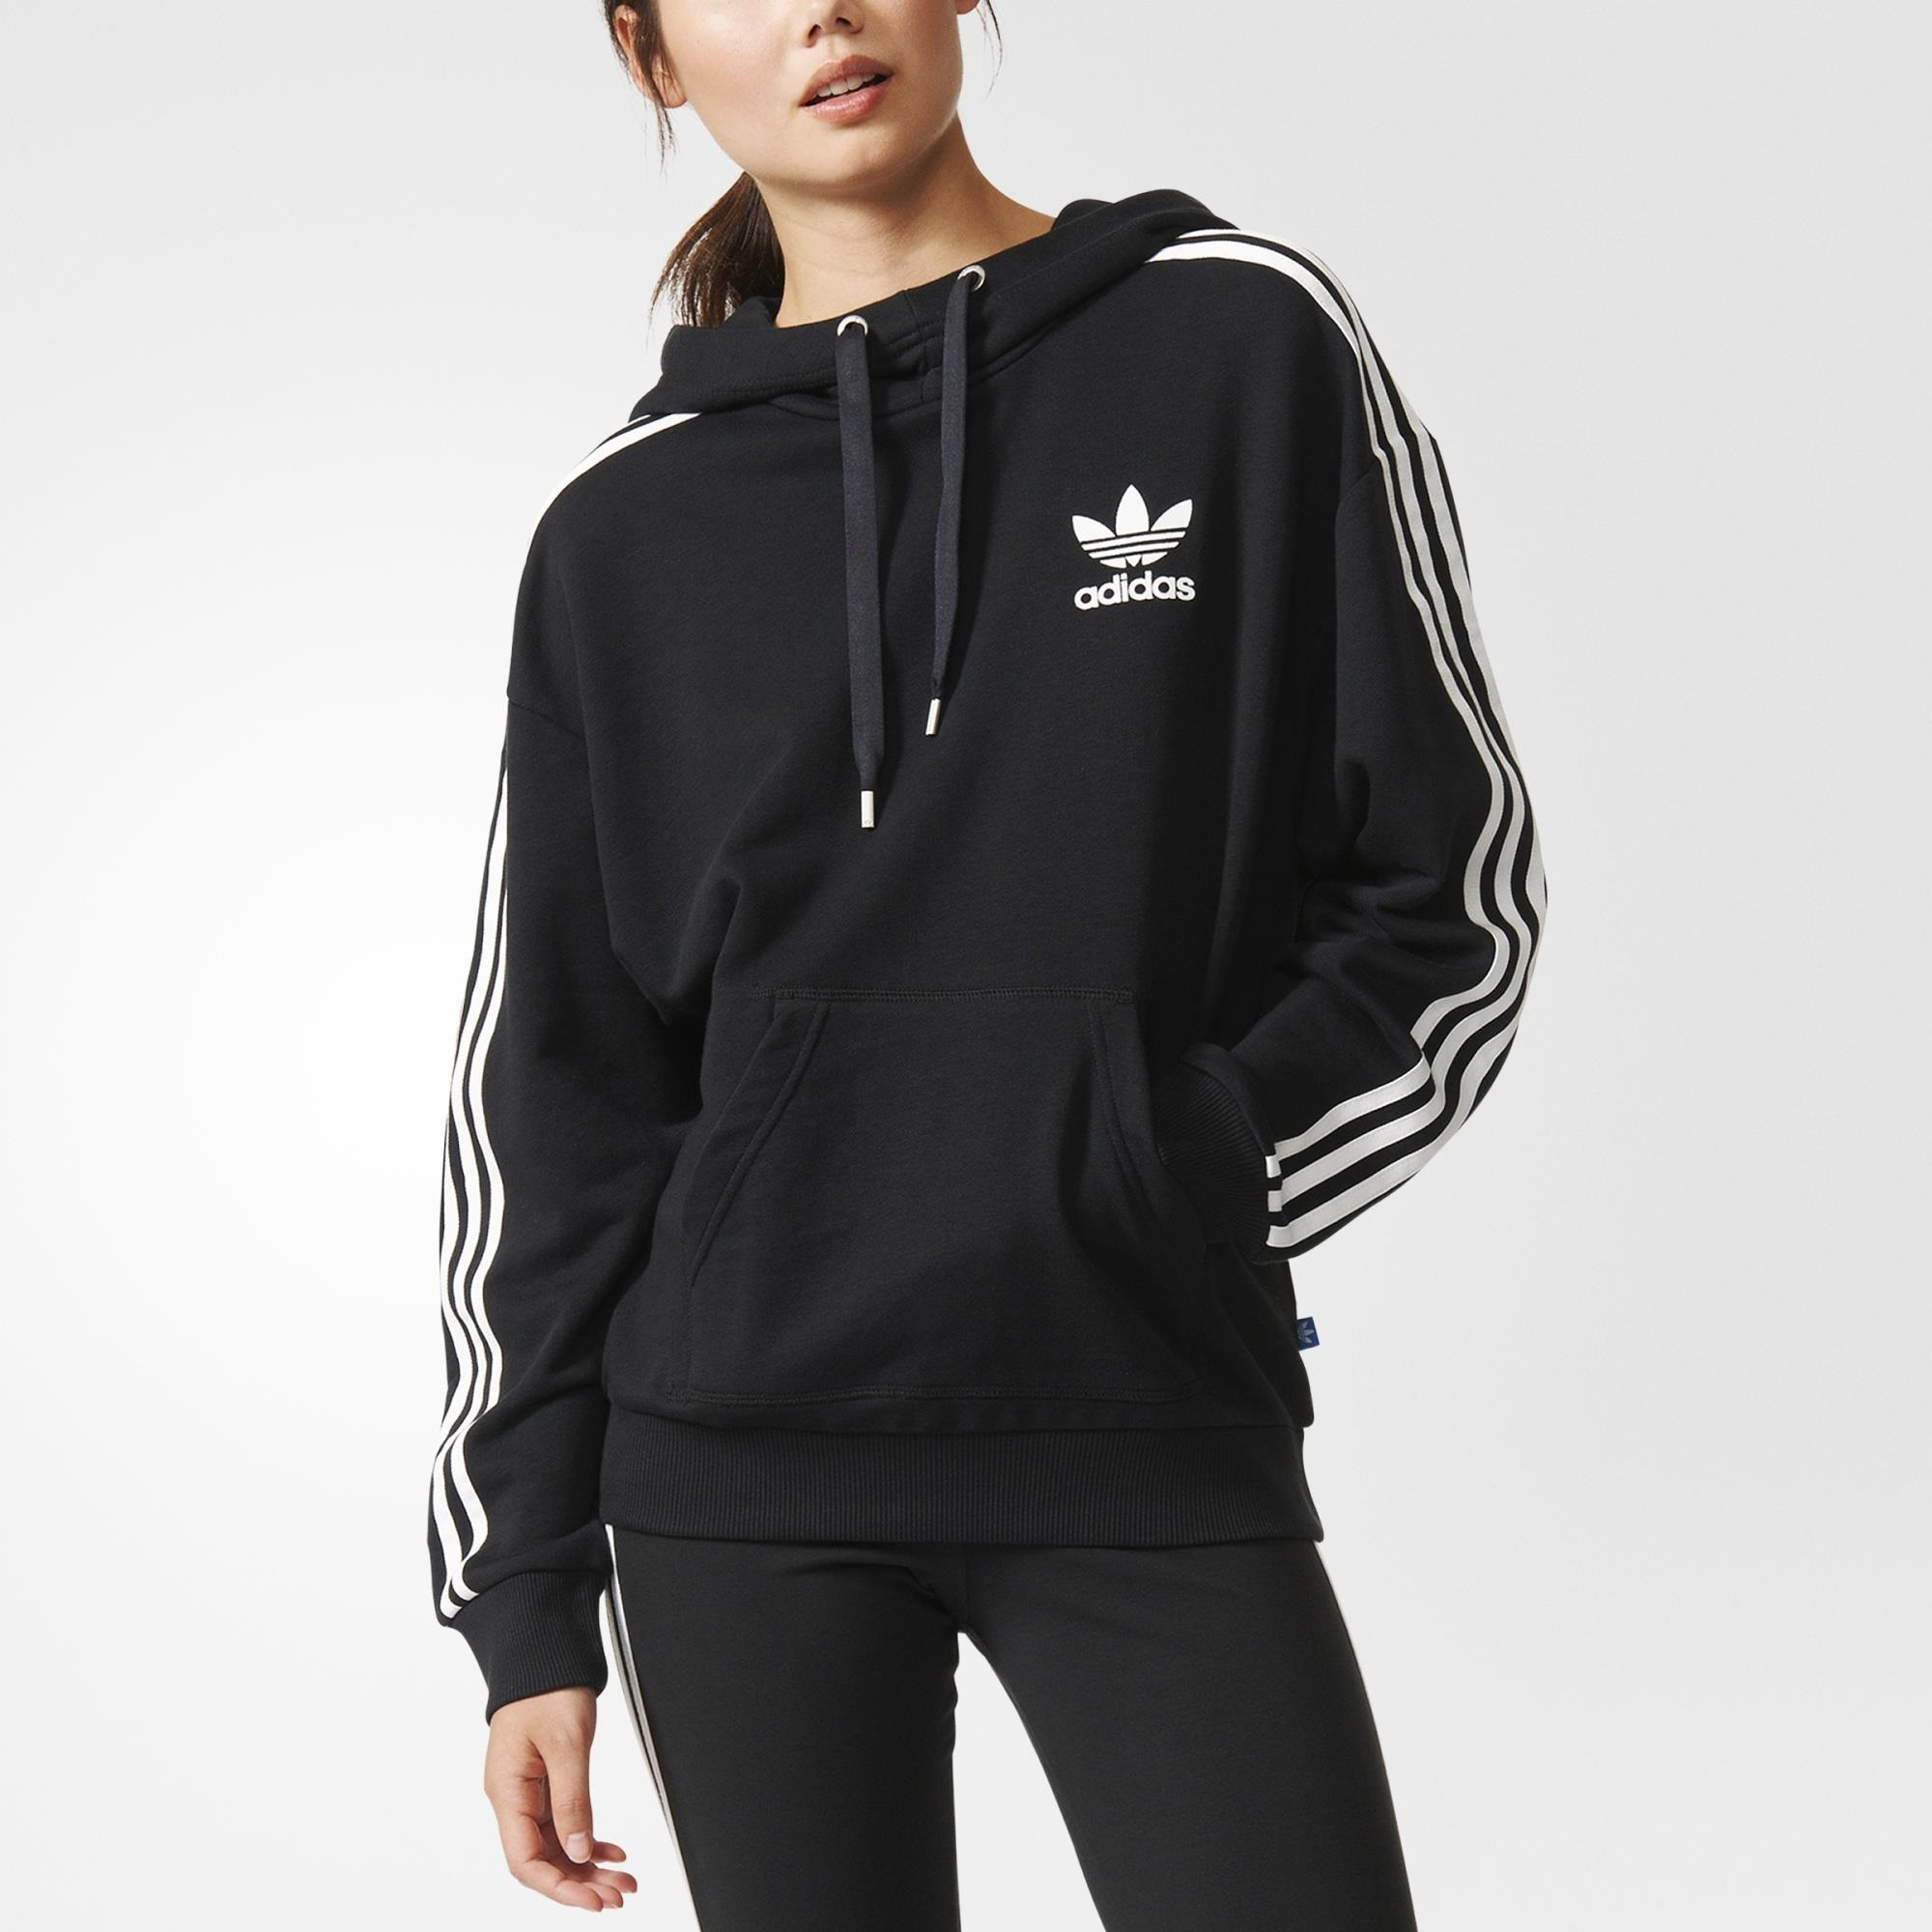 d9f2316bb0a8 adidas 3-Stripes Hoodie - Black